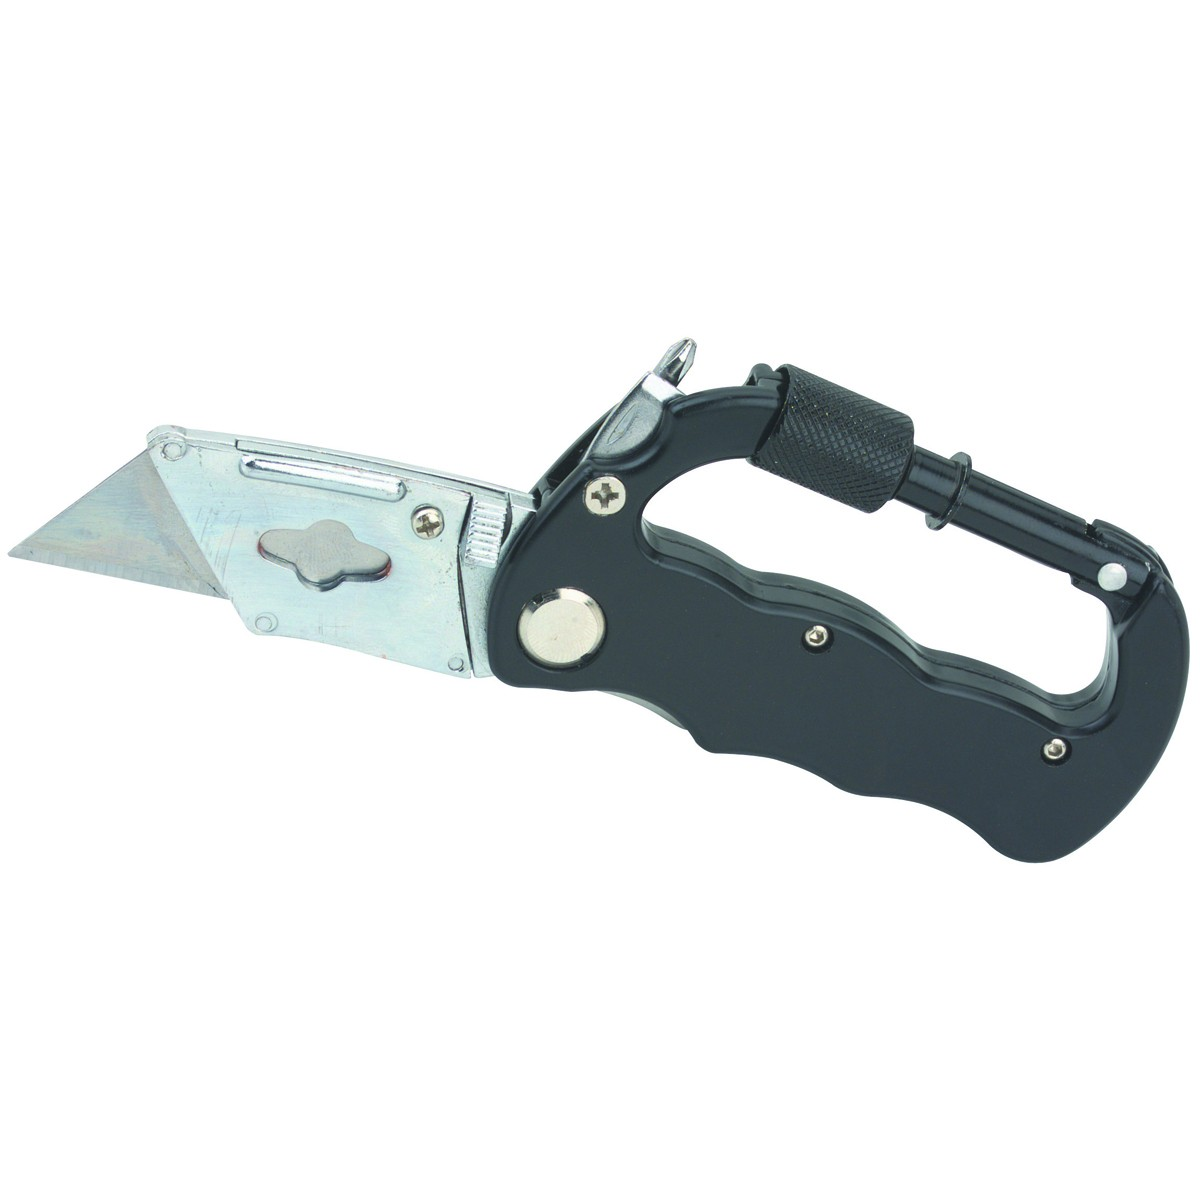 Carabiner Multi-tool Knife With Five Blades